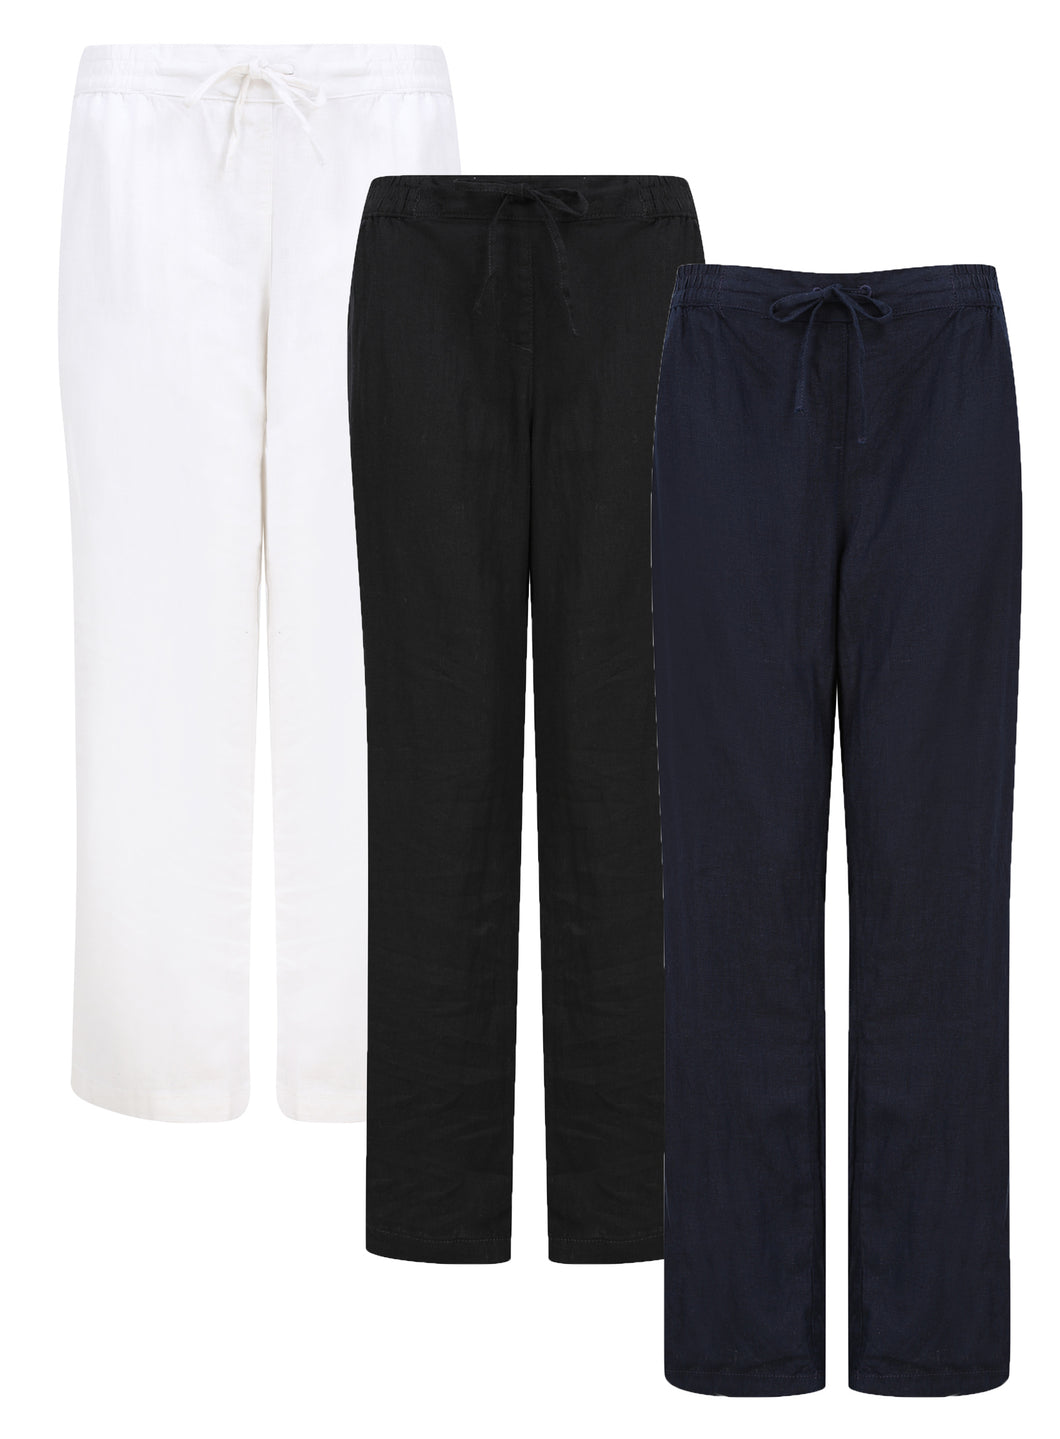 Ladies Linen Blend Tie Belt Straight Leg Trouser 3 Colour